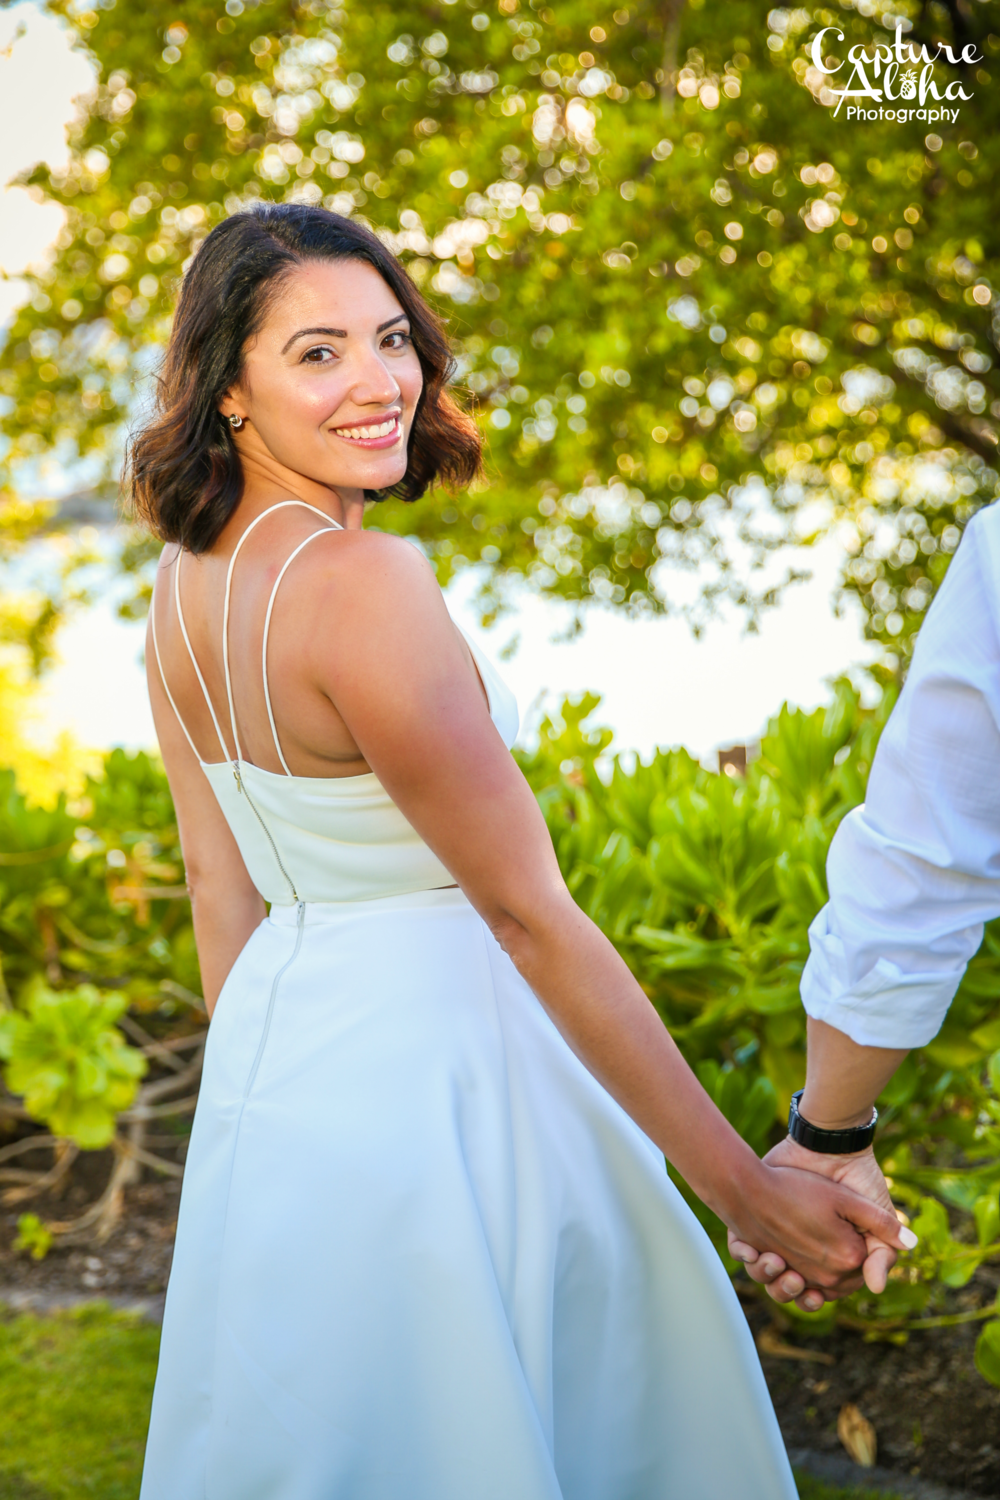 Mauiengagementphotography4.png